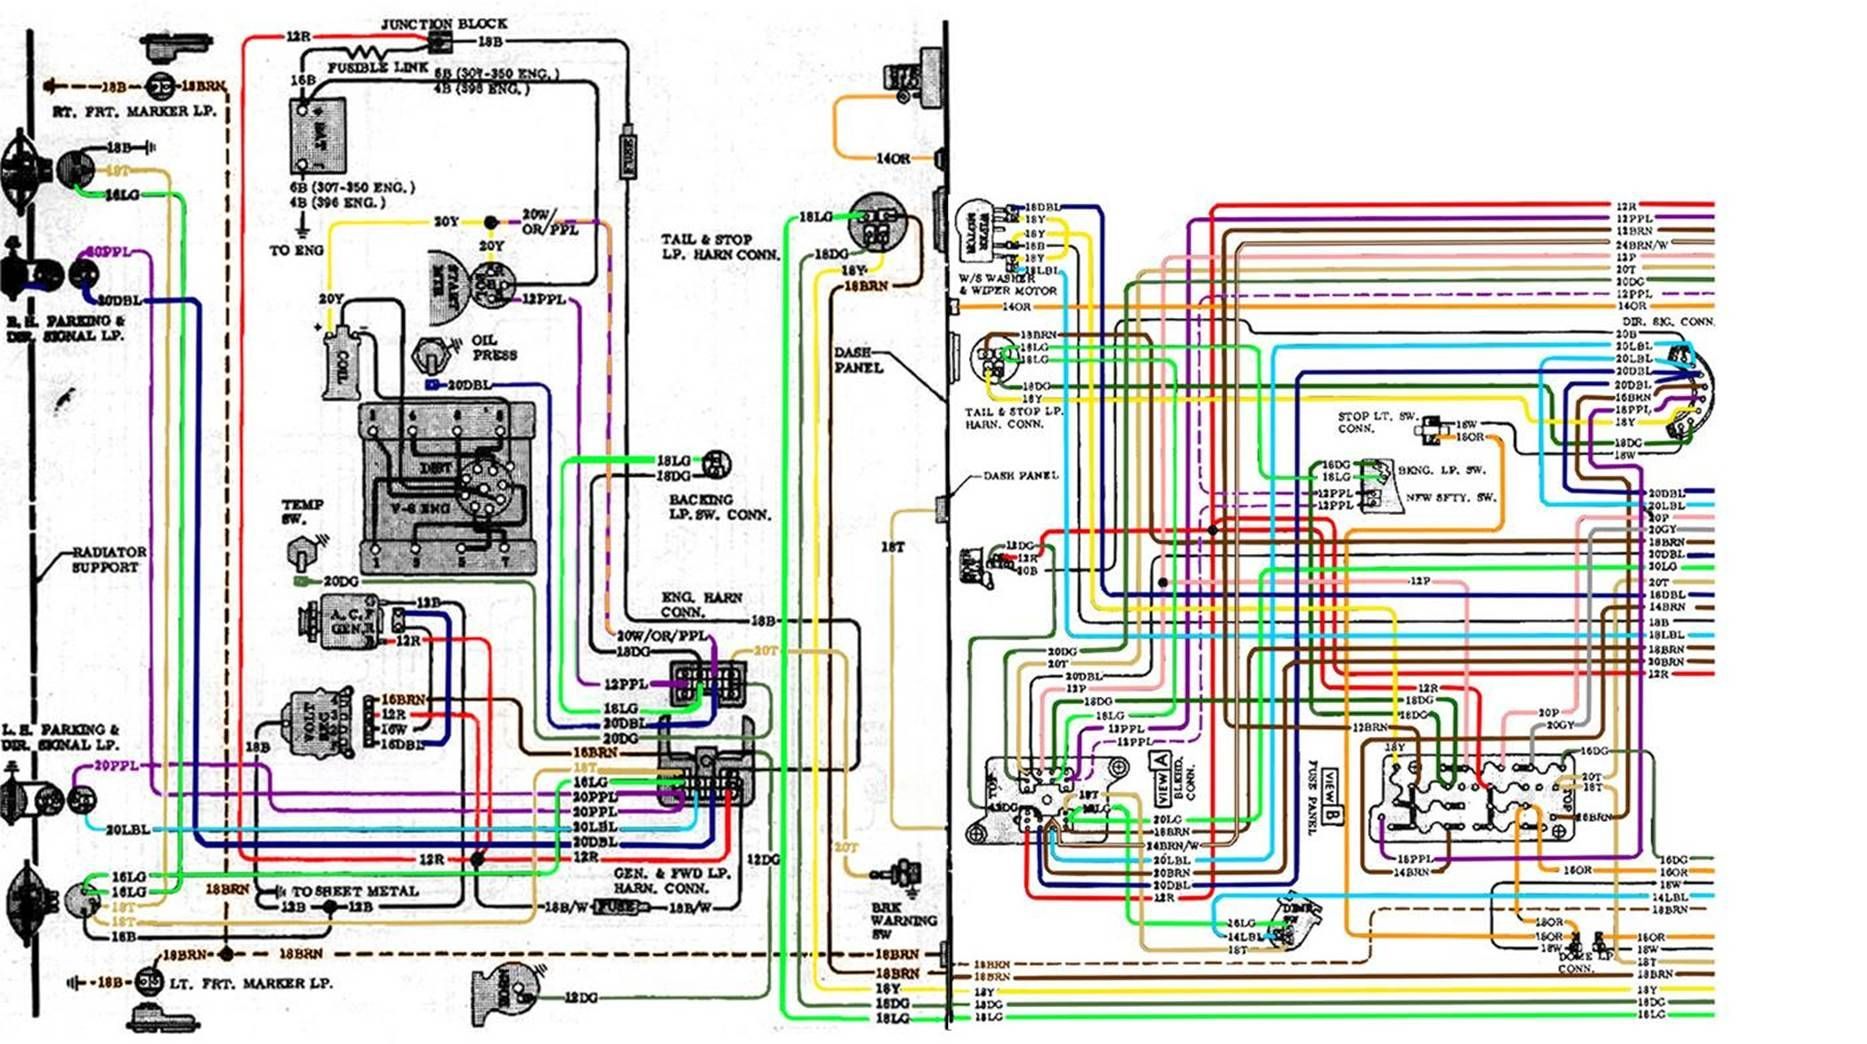 6772 Chevy Wiring Diagram crafts and art Pinterest